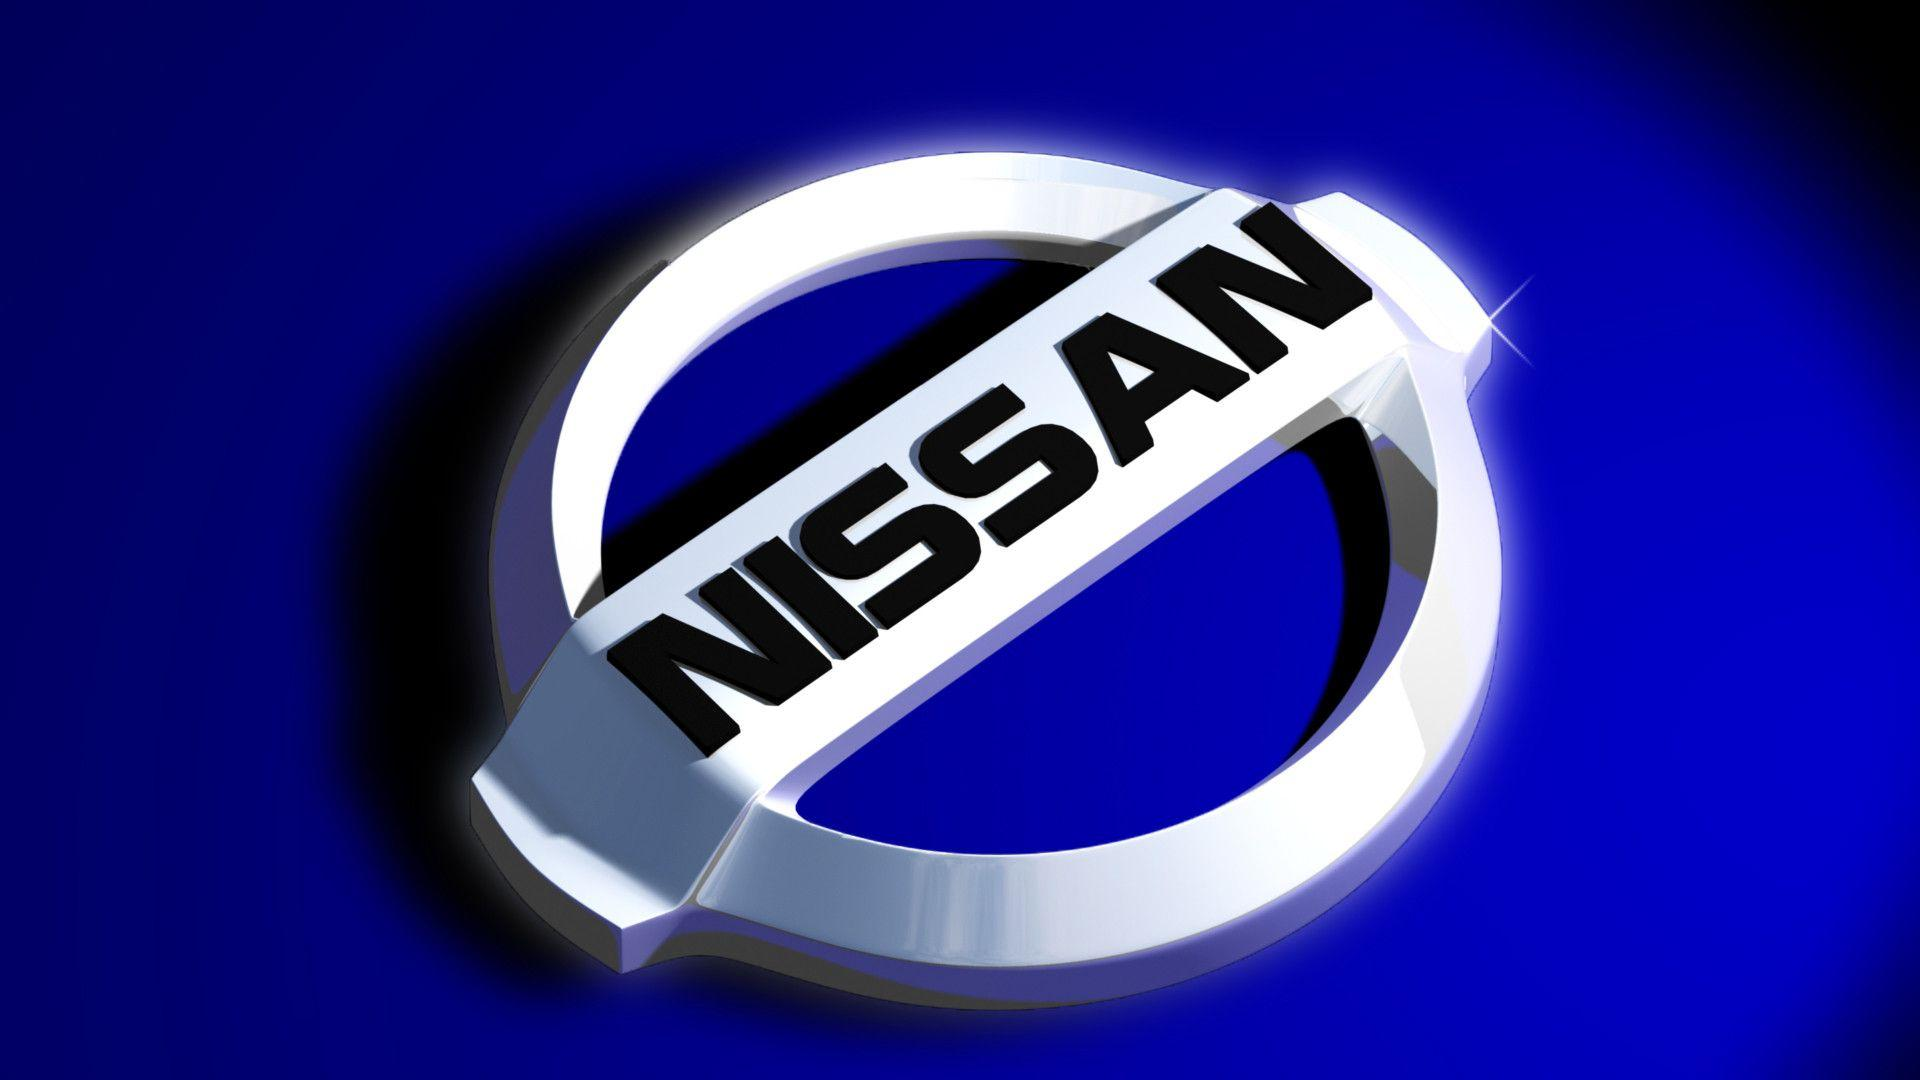 HD Nissan Emblem Wallpaper | Download Free - 126912